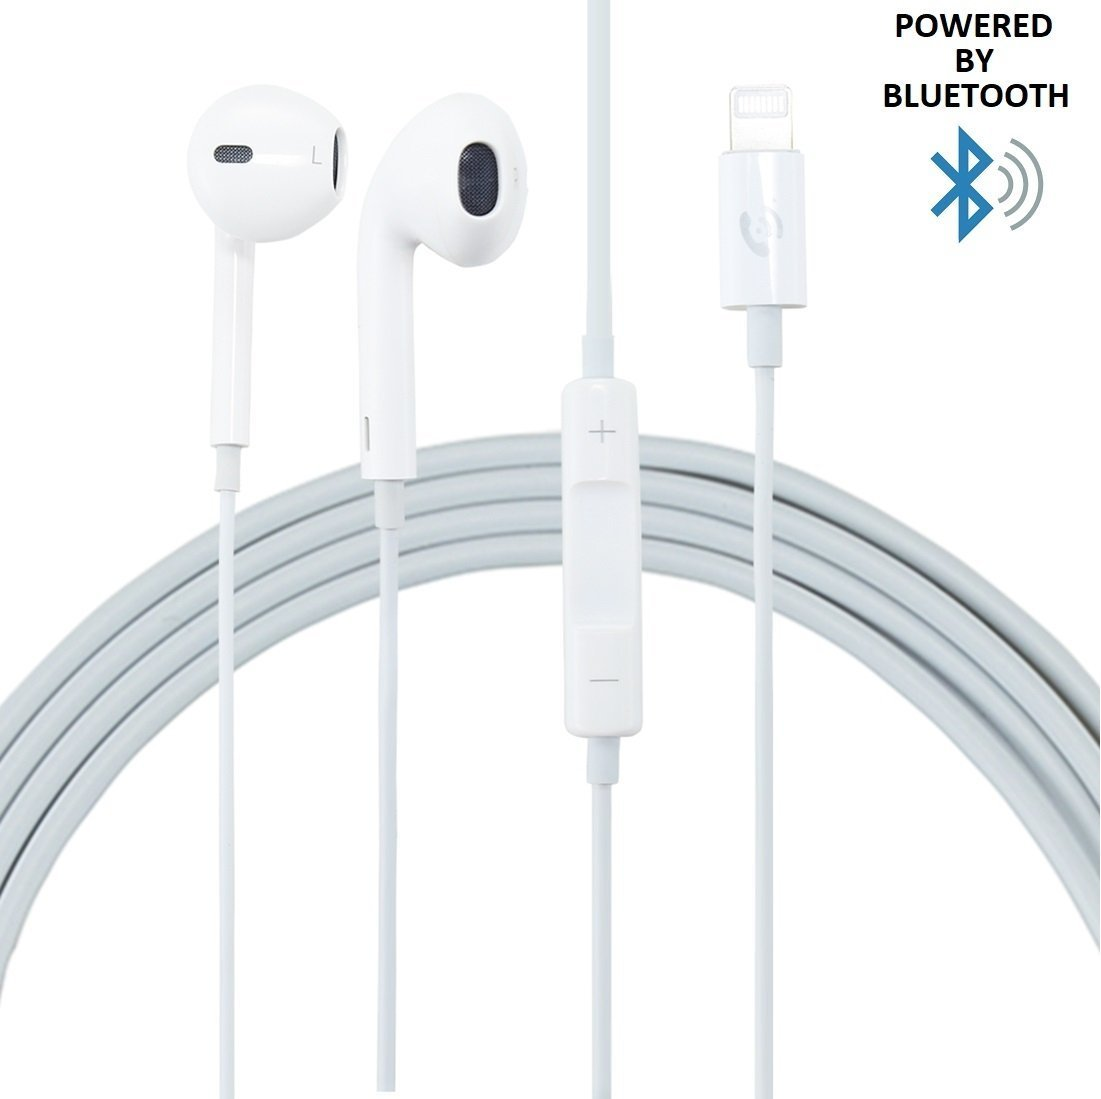 Headphones for iPhone 7, Samxu Lightning iphone earbuds with Microphone Earbuds Stereo Headphones and Noise Isolating headset Made for iPhone 7/7 Plus iPhone8/8Plus iPhone X